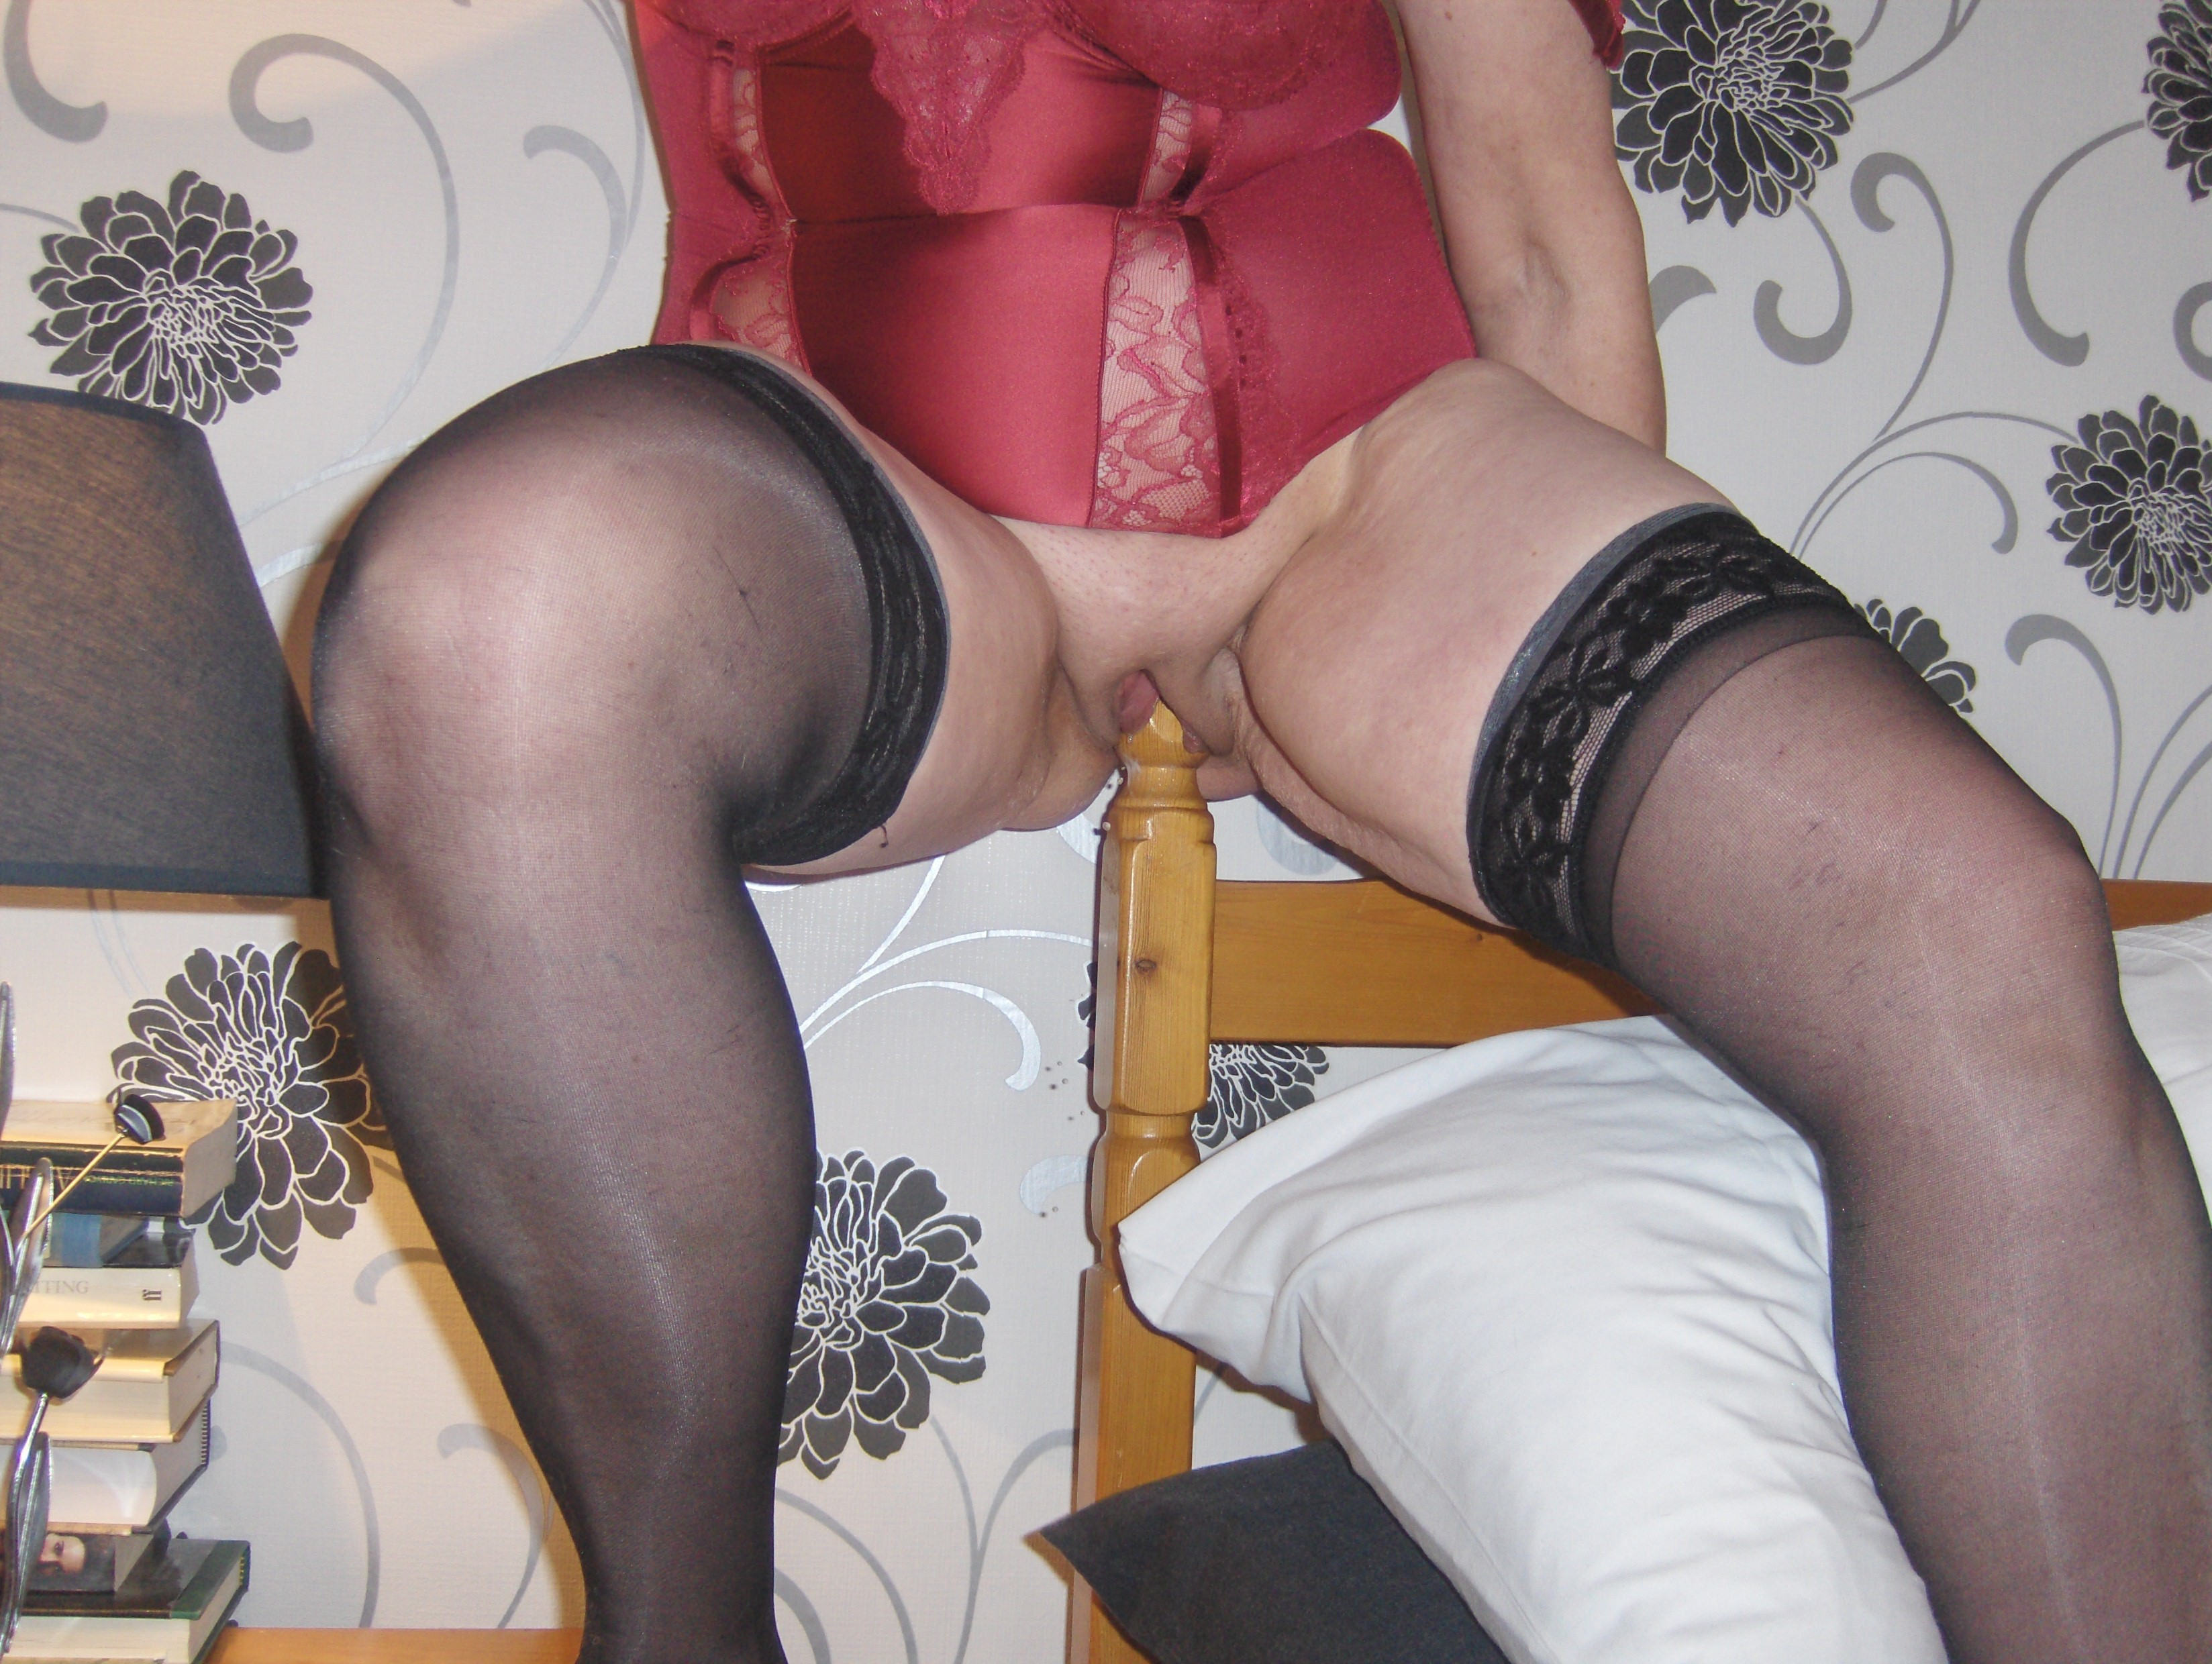 amateur object inserted xxx